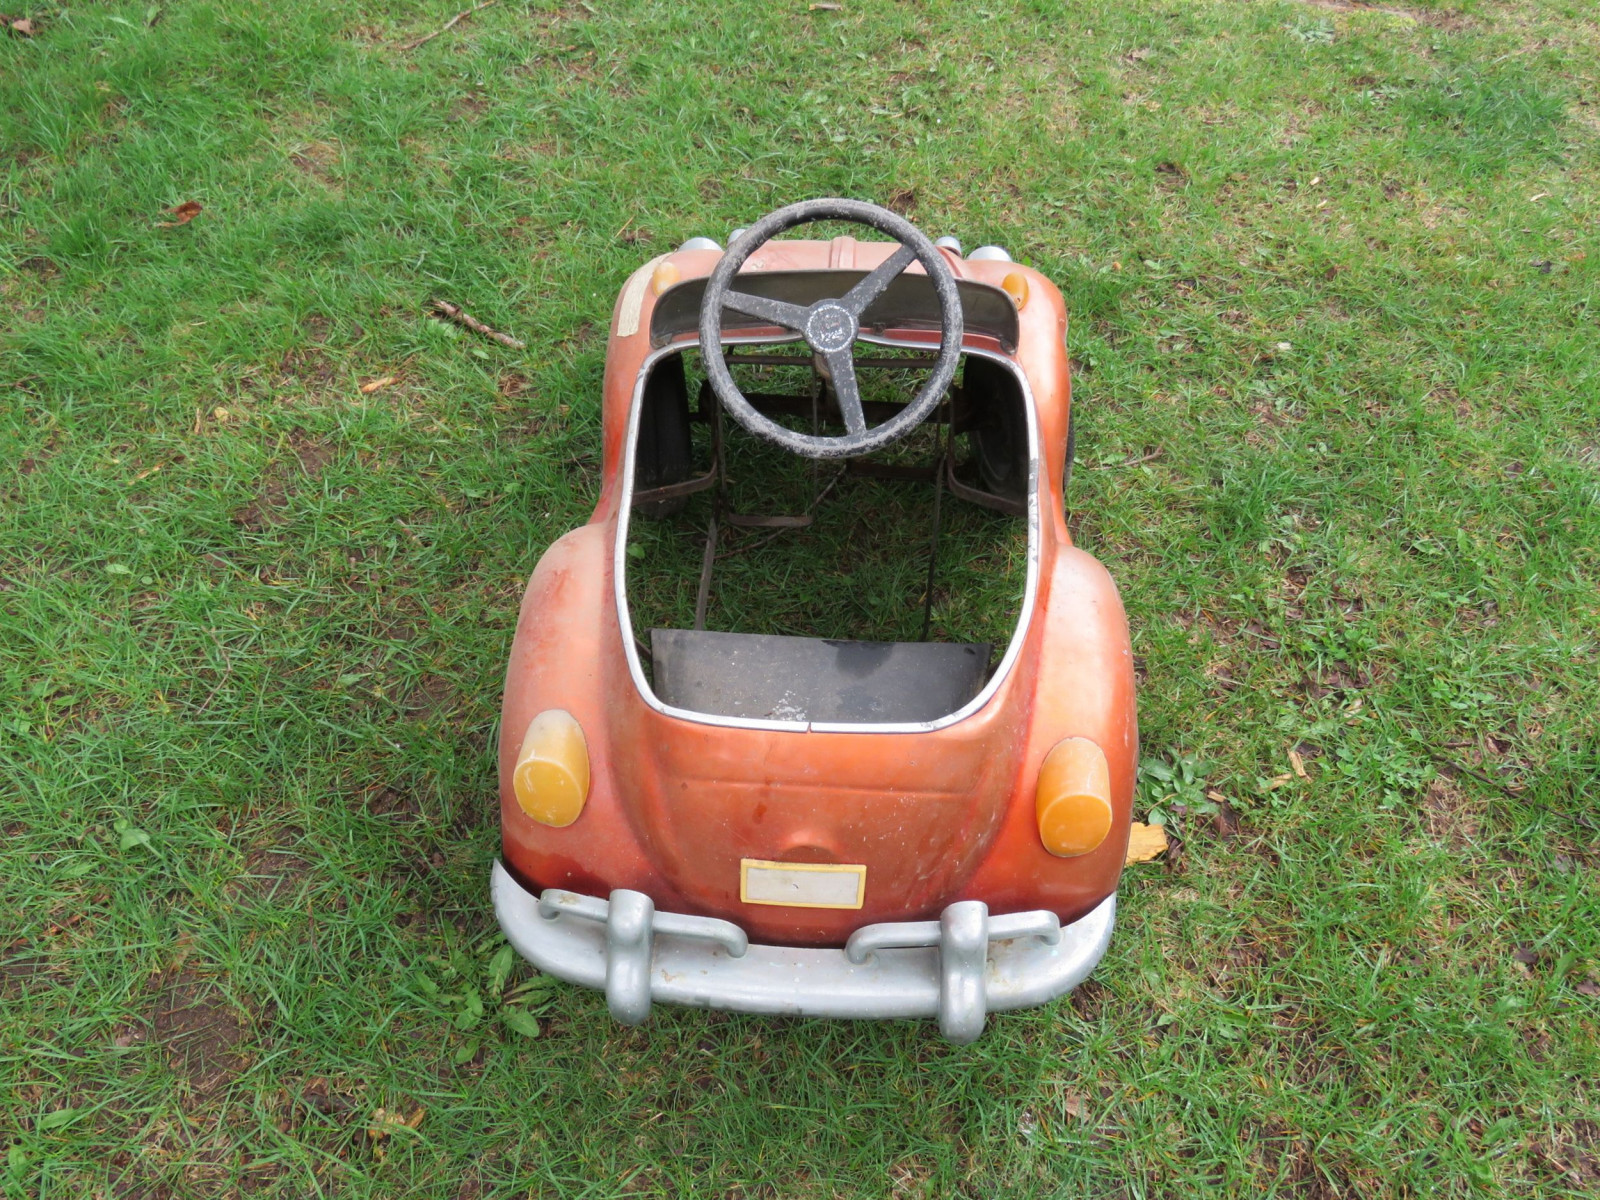 VW Pedal Car - Image 2